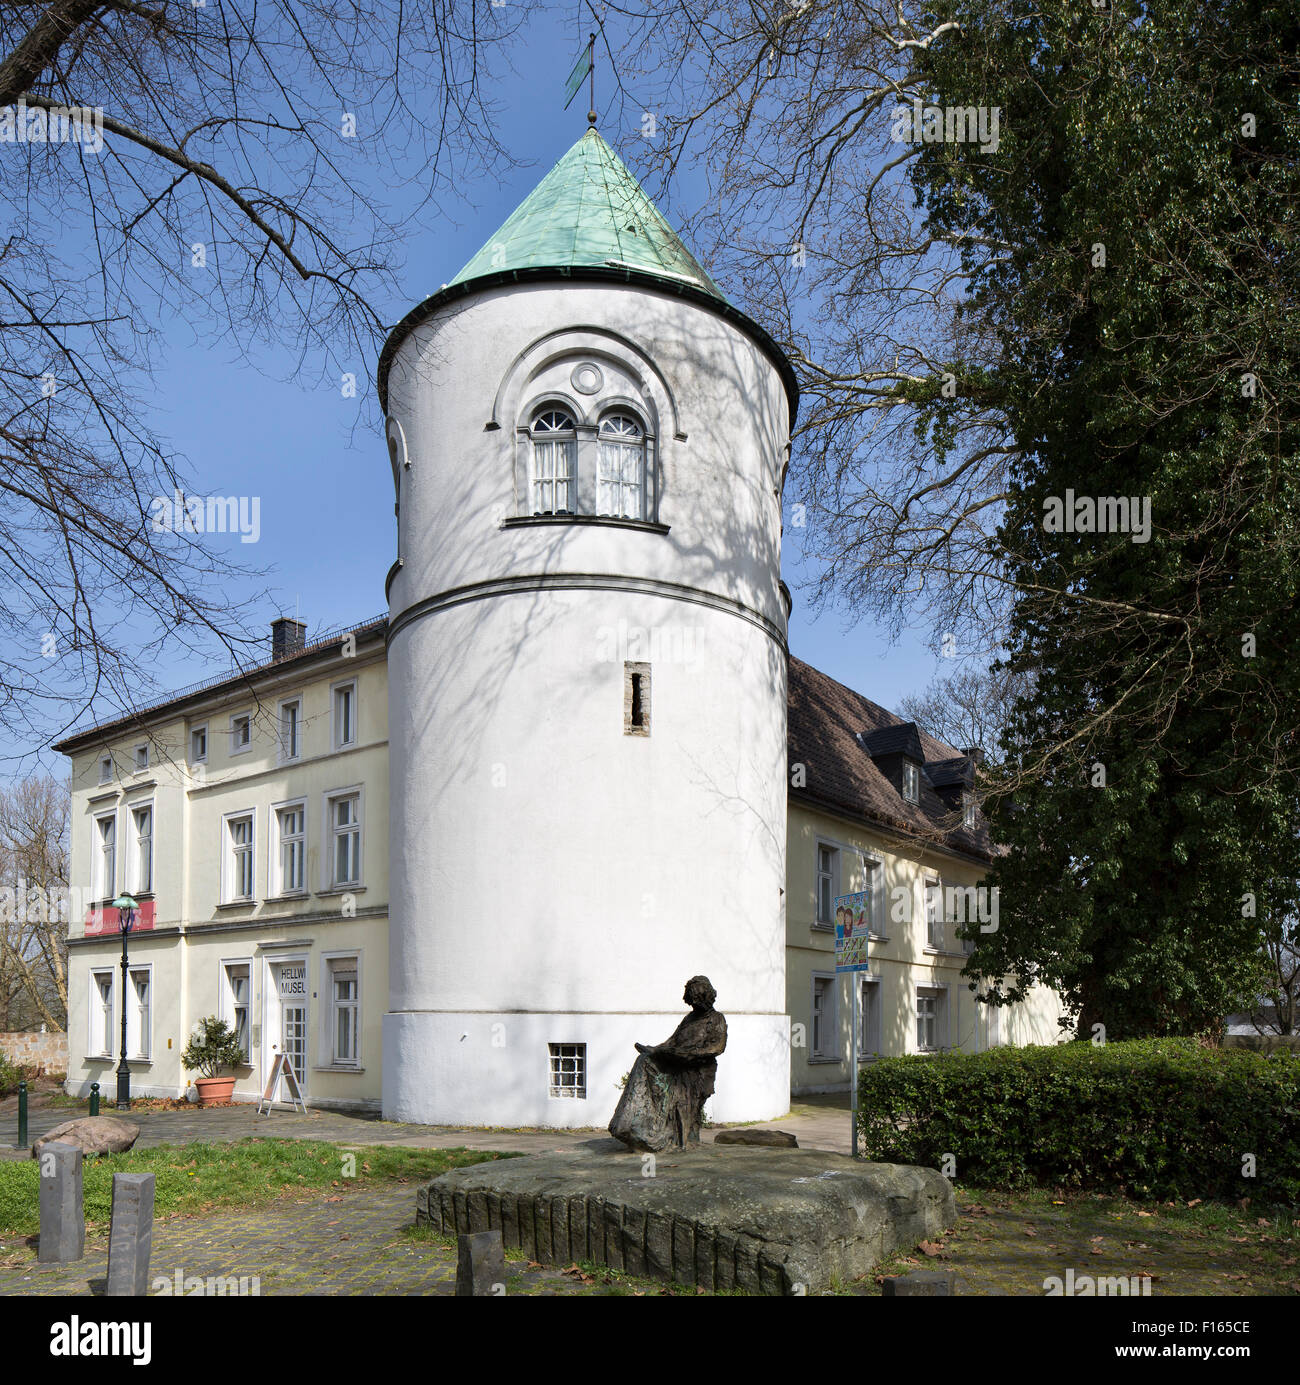 Former Burg Unna castle, now the Hellweg Museum, Unna, Ruhr district, North Rhine-Westphalia, Germany - Stock Image